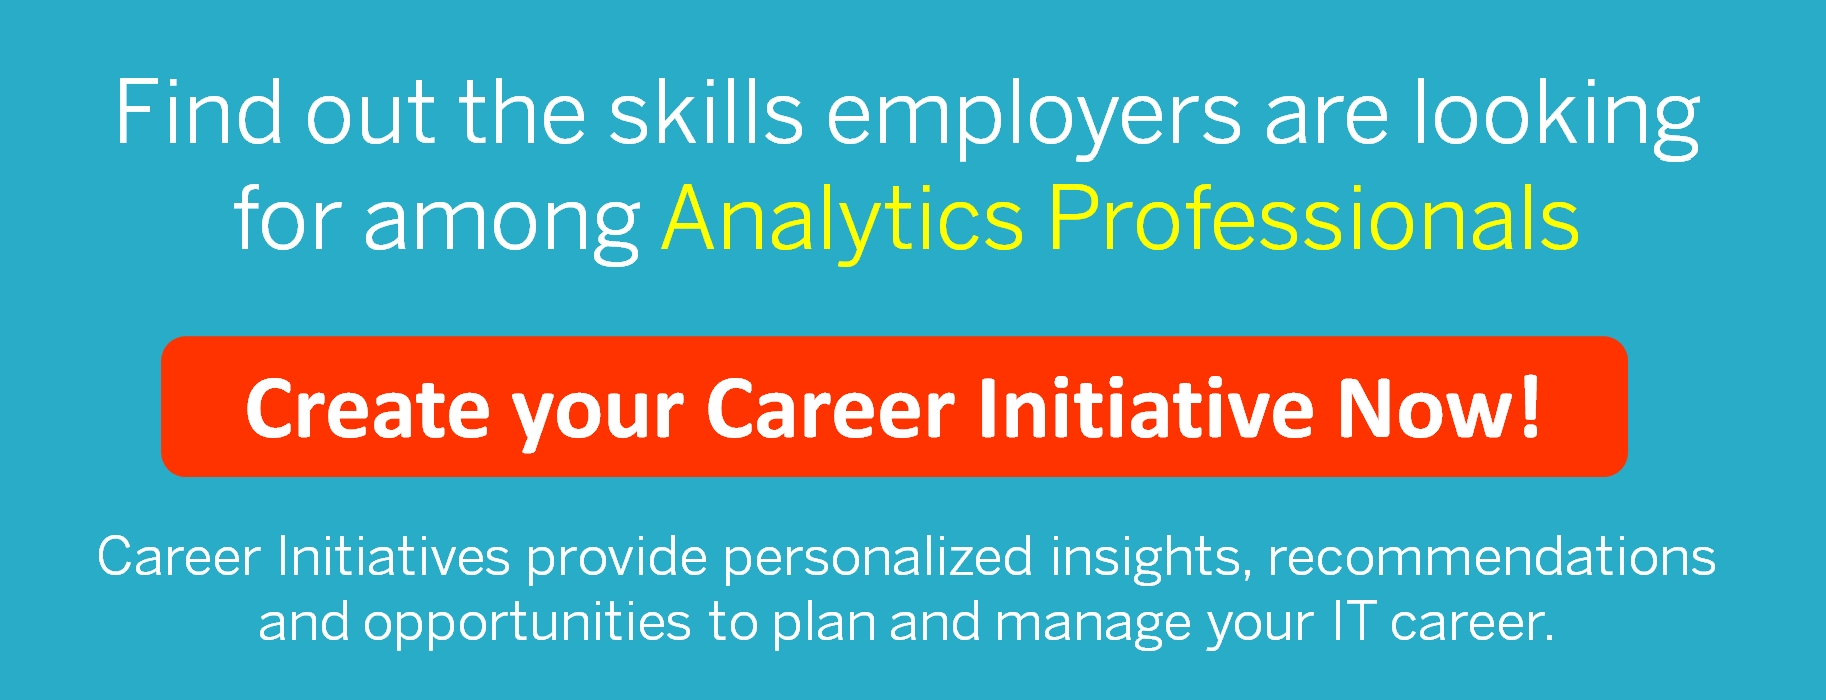 How to ace your Data Analytics Interview - Image 2